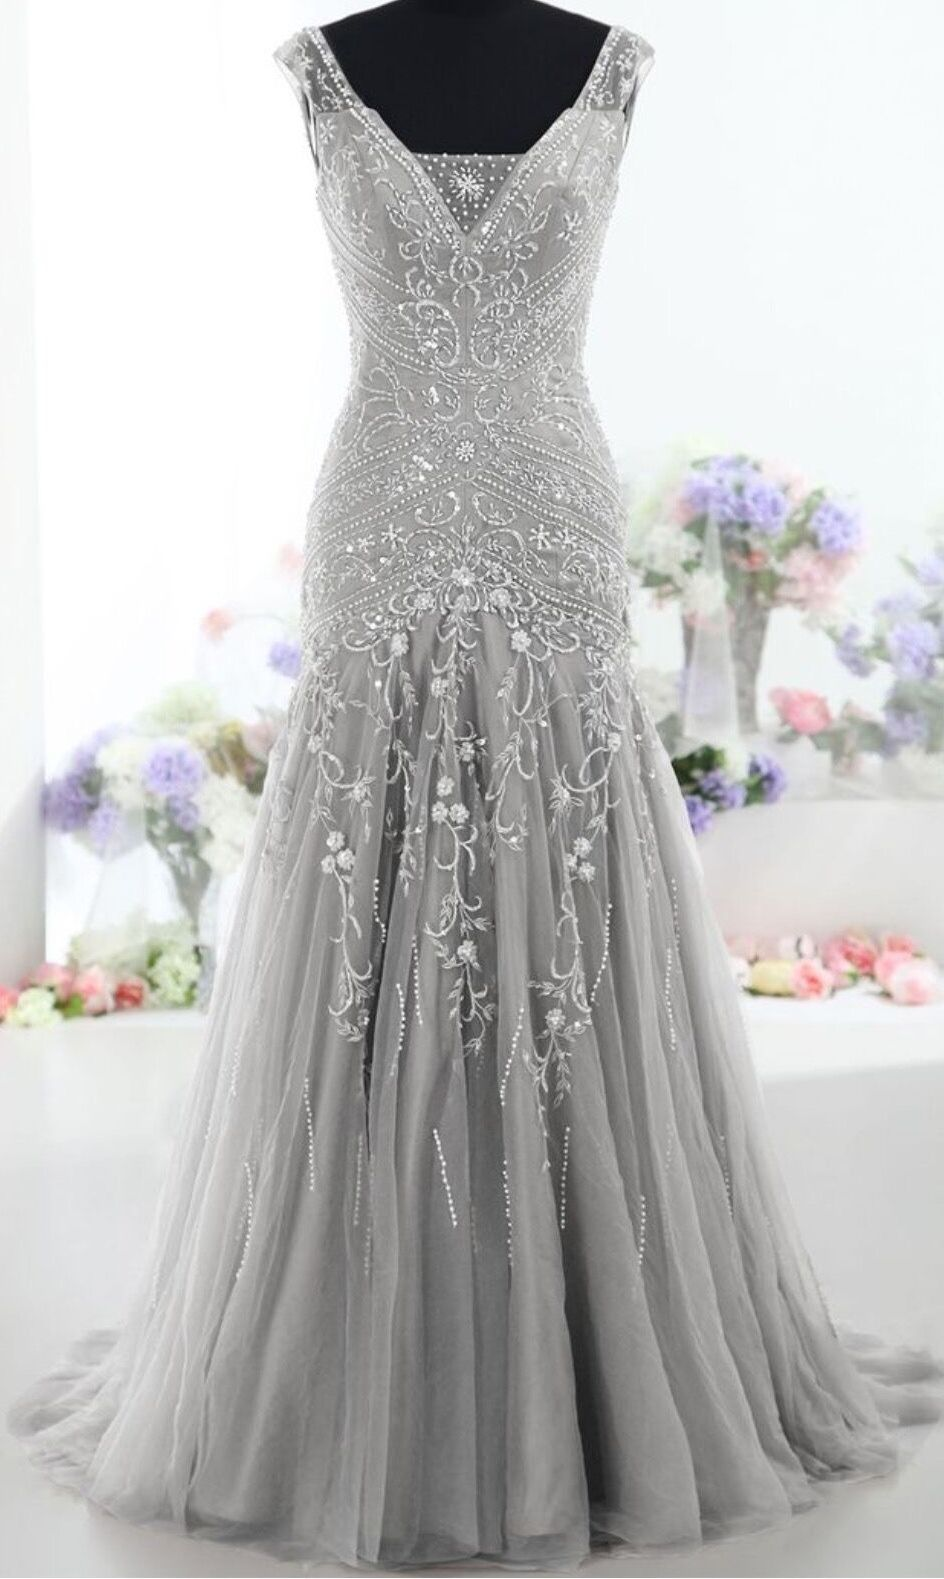 f5a6bf8d99 Silver Long Back Up Lace V-neck Beading Prom Dresses